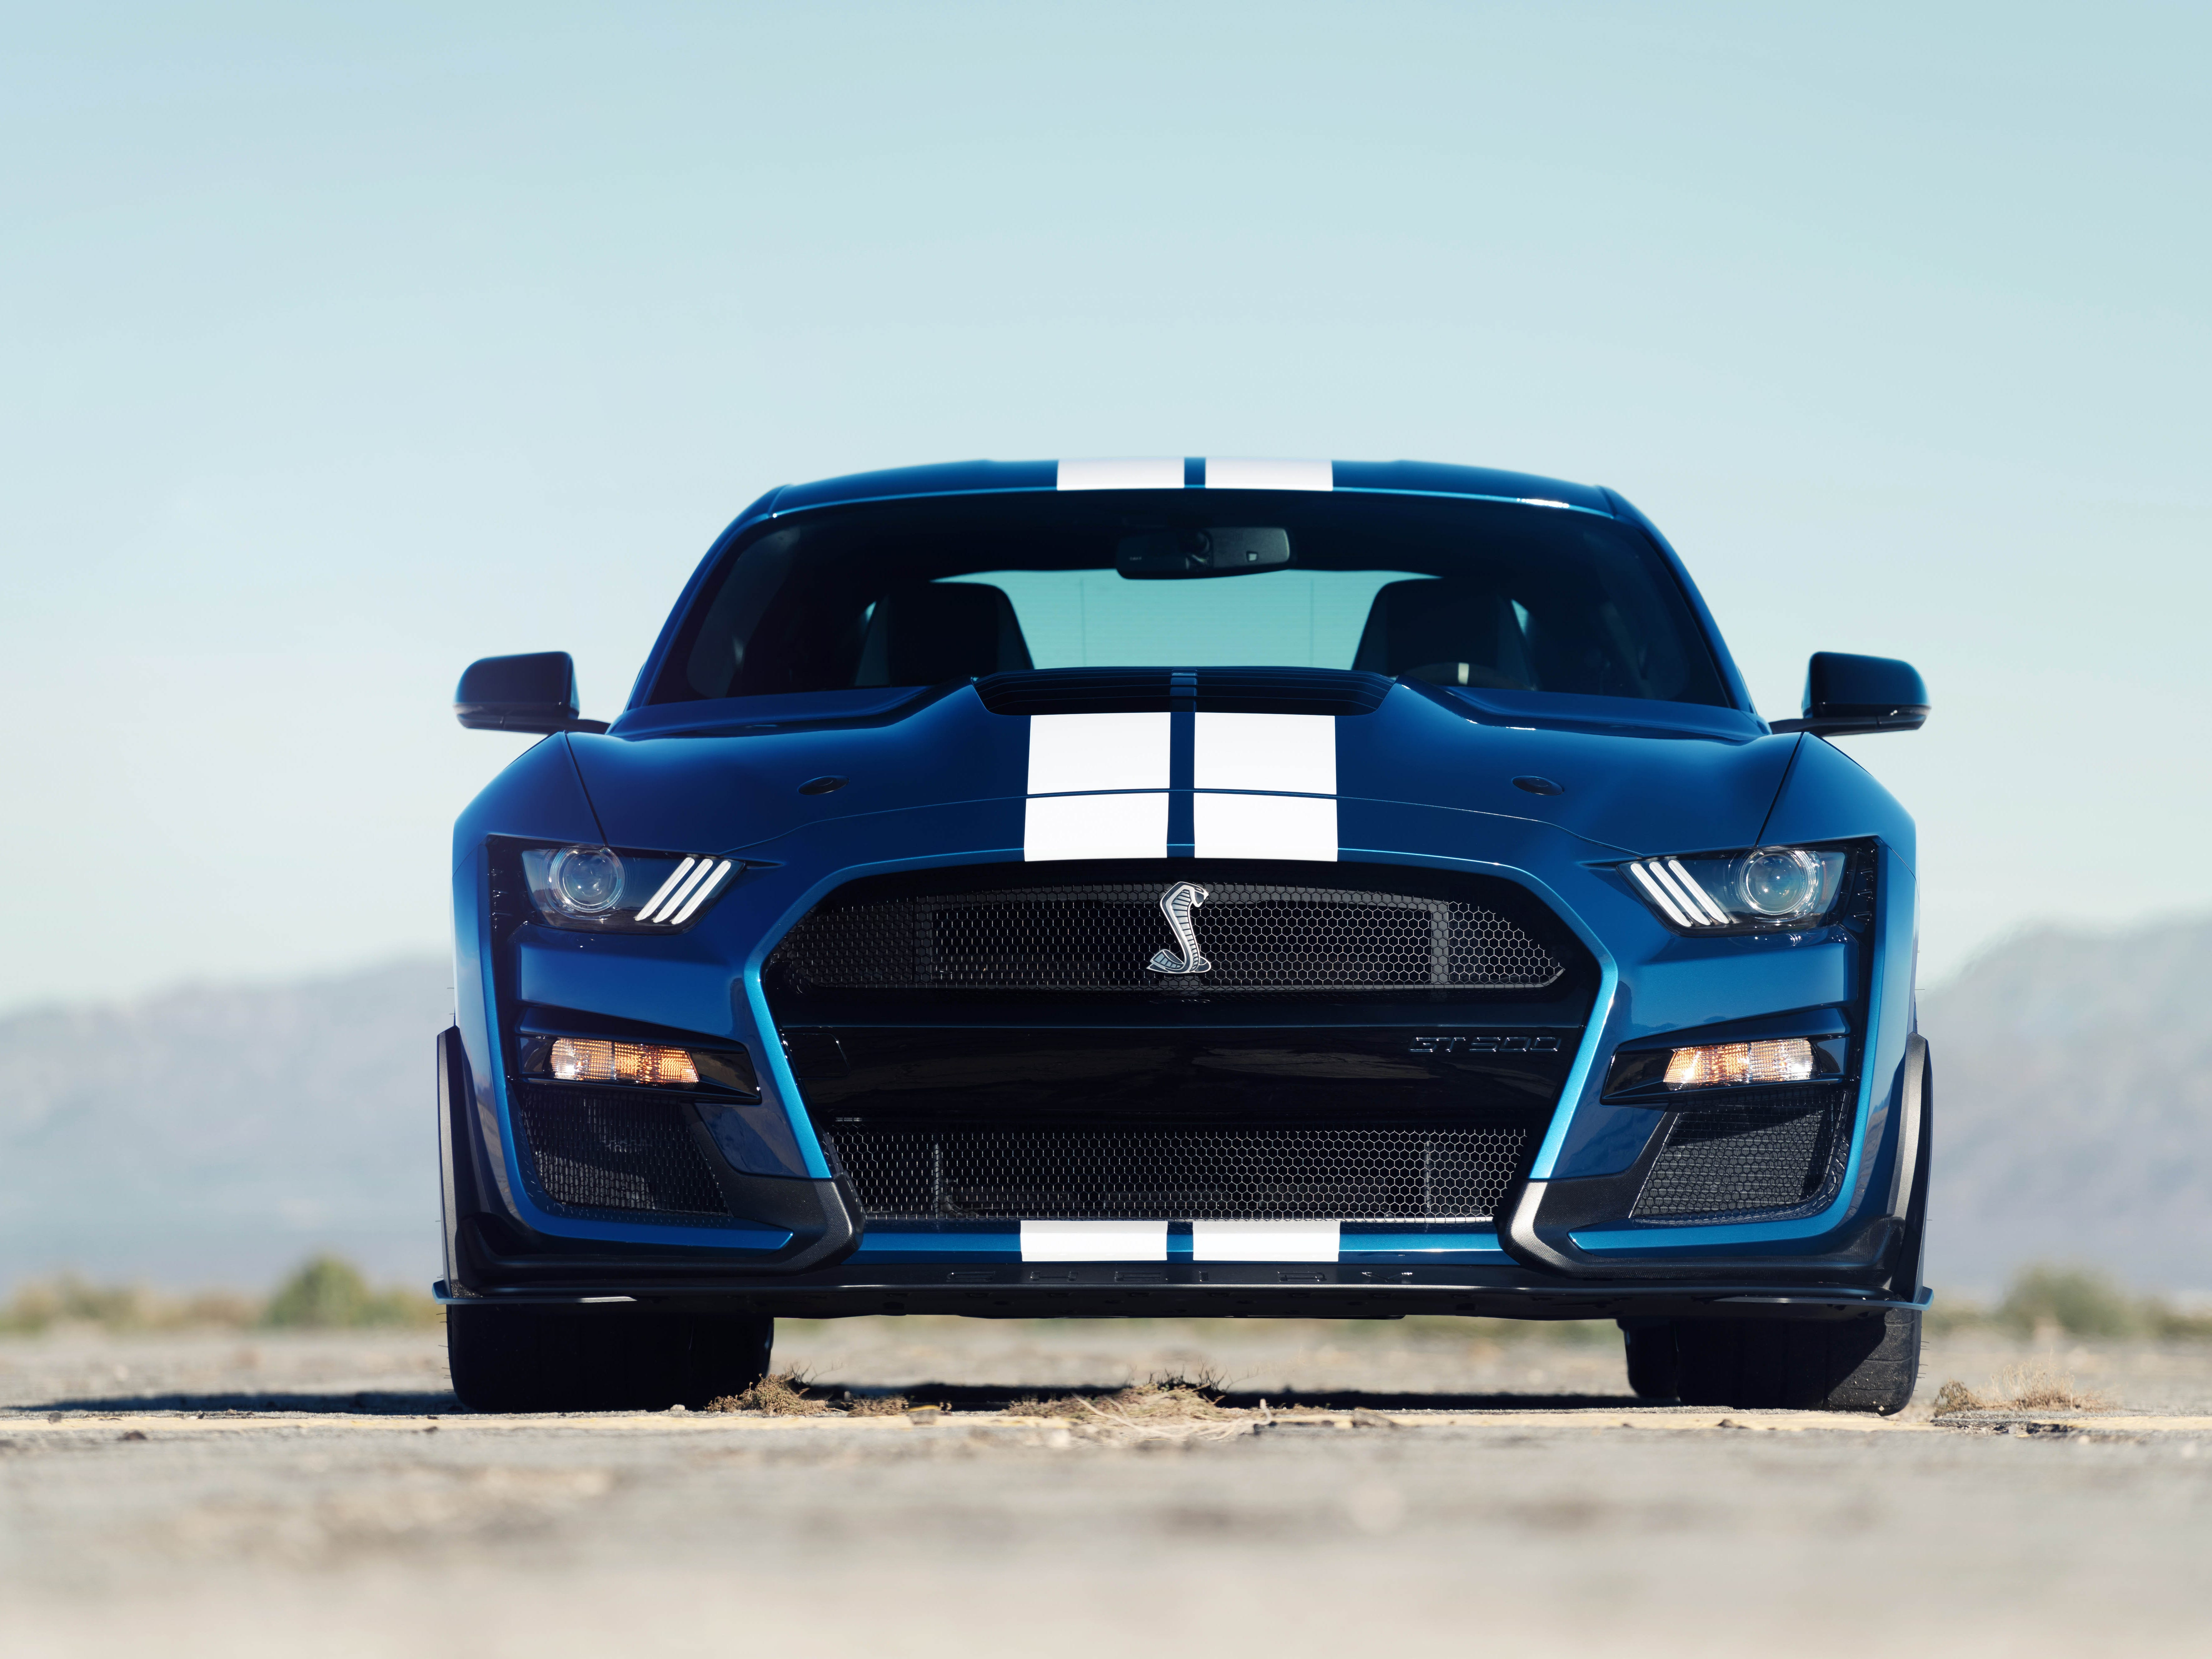 This is the front of the Mustang GT500.